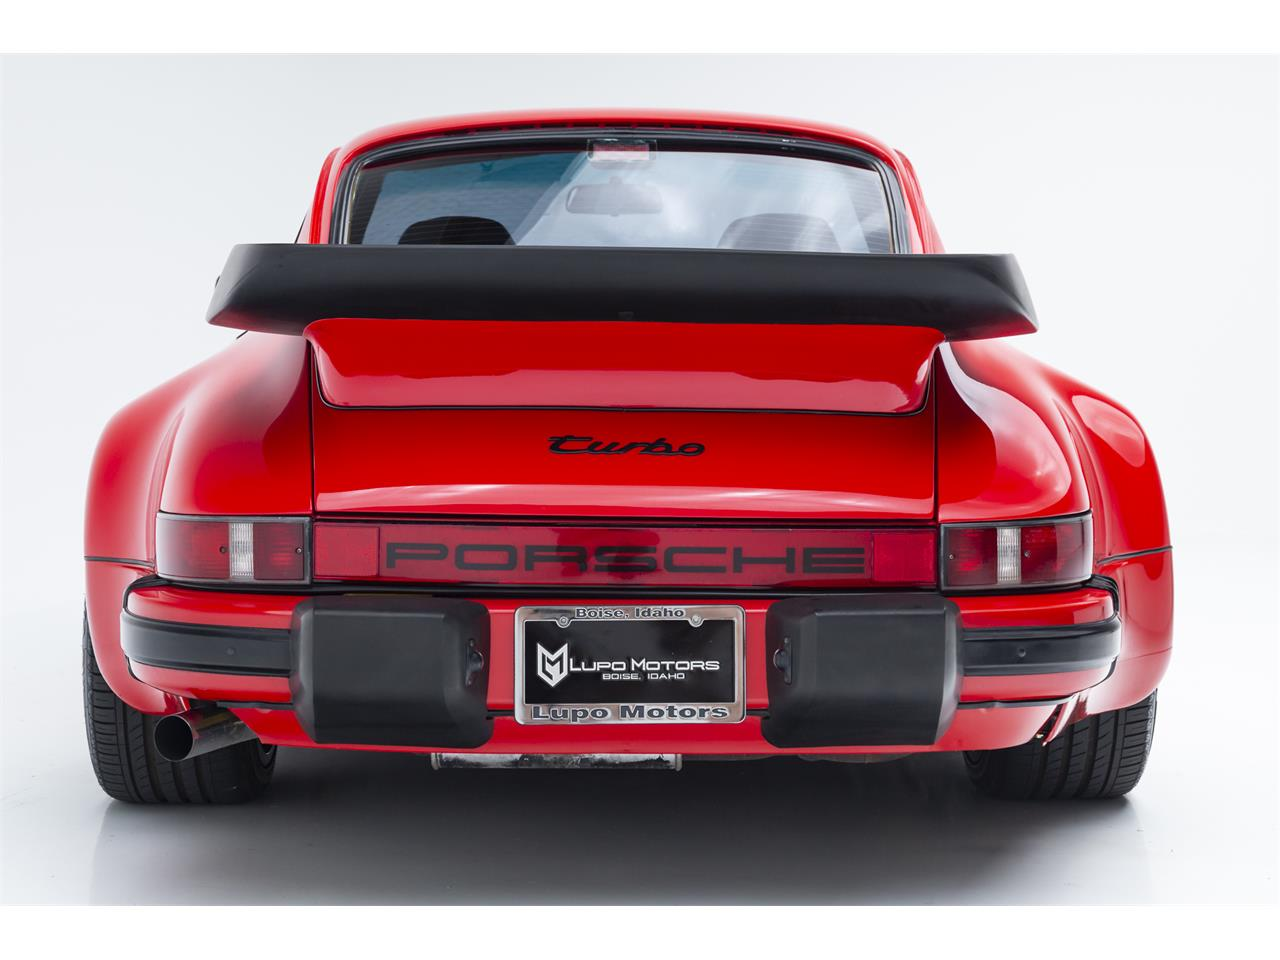 Large Picture of '79 Porsche 911 Carrera - $49,995.00 Offered by a Private Seller - QIAZ